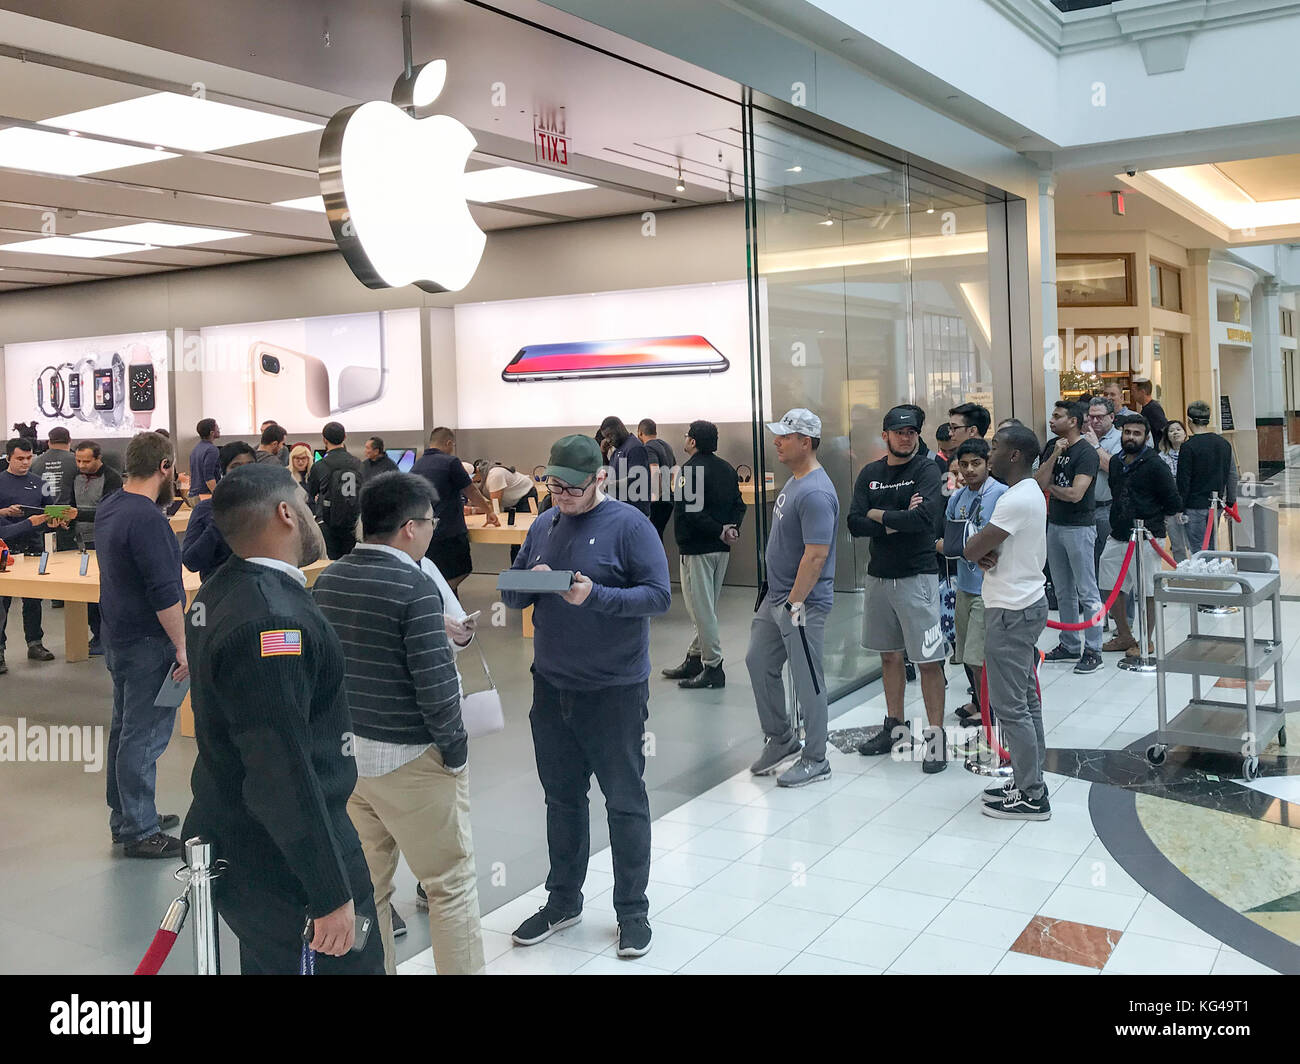 Pennsylvania, USA. 3rd Nov, 2017. Apple customers wait in line to pick up their pre-ordered Apple iPhone X / iPhoneX - Stock Image